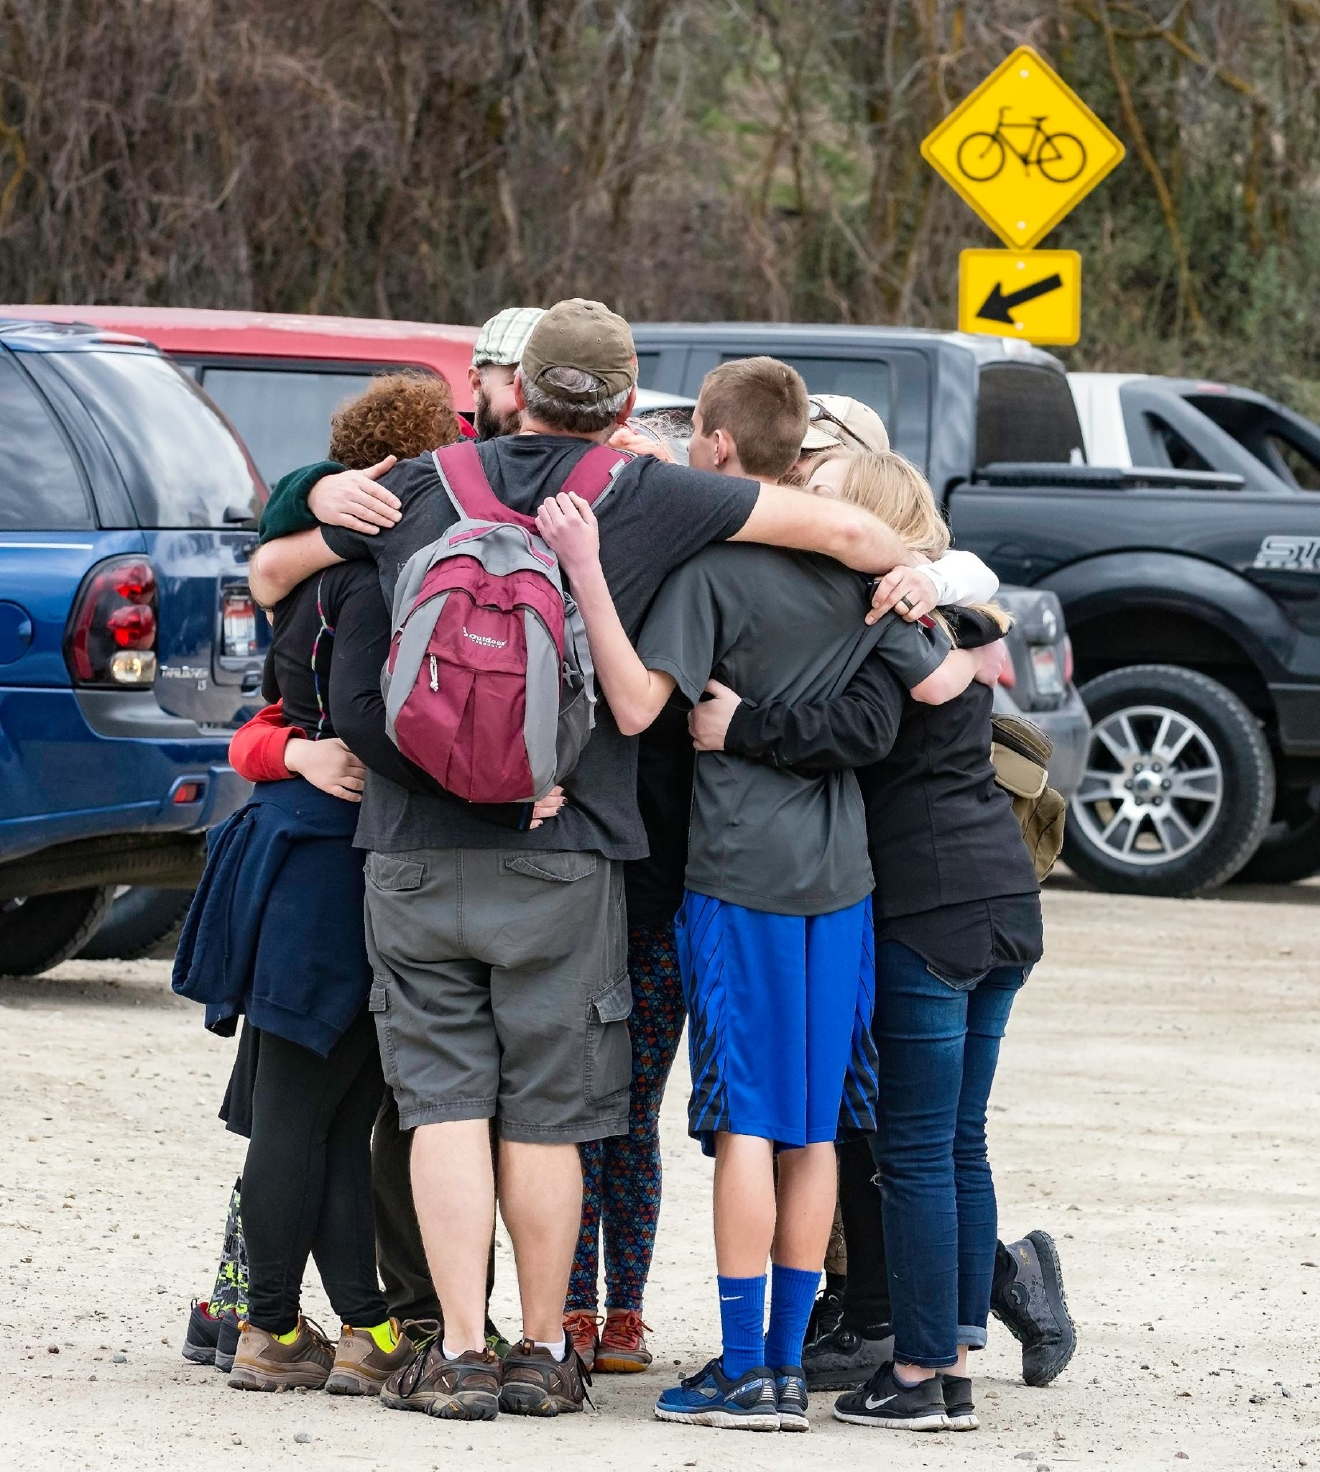 A group of hikers hug as the scene calms down. (Photo Courtesy Mark Goforth)